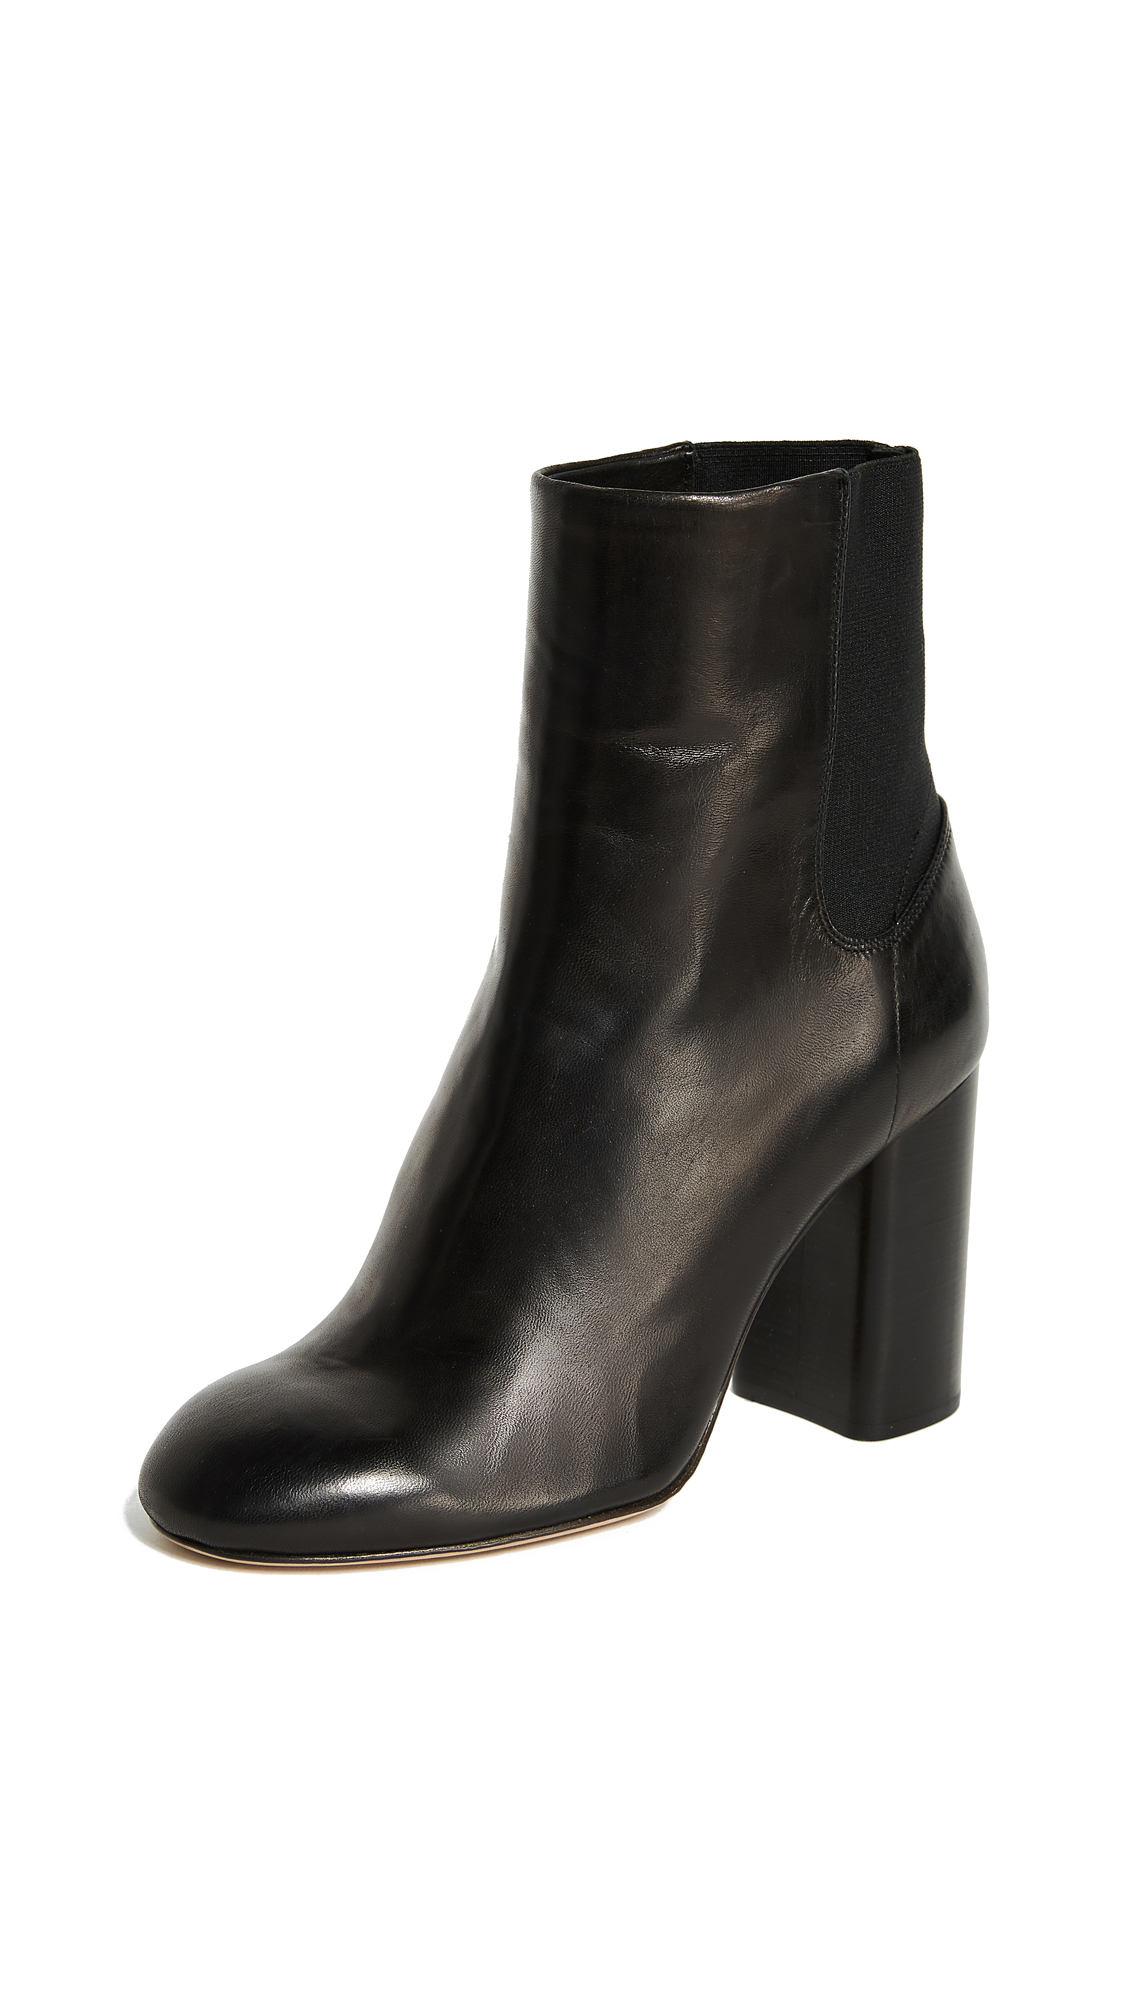 Rag & Bone Agnes Booties - Black